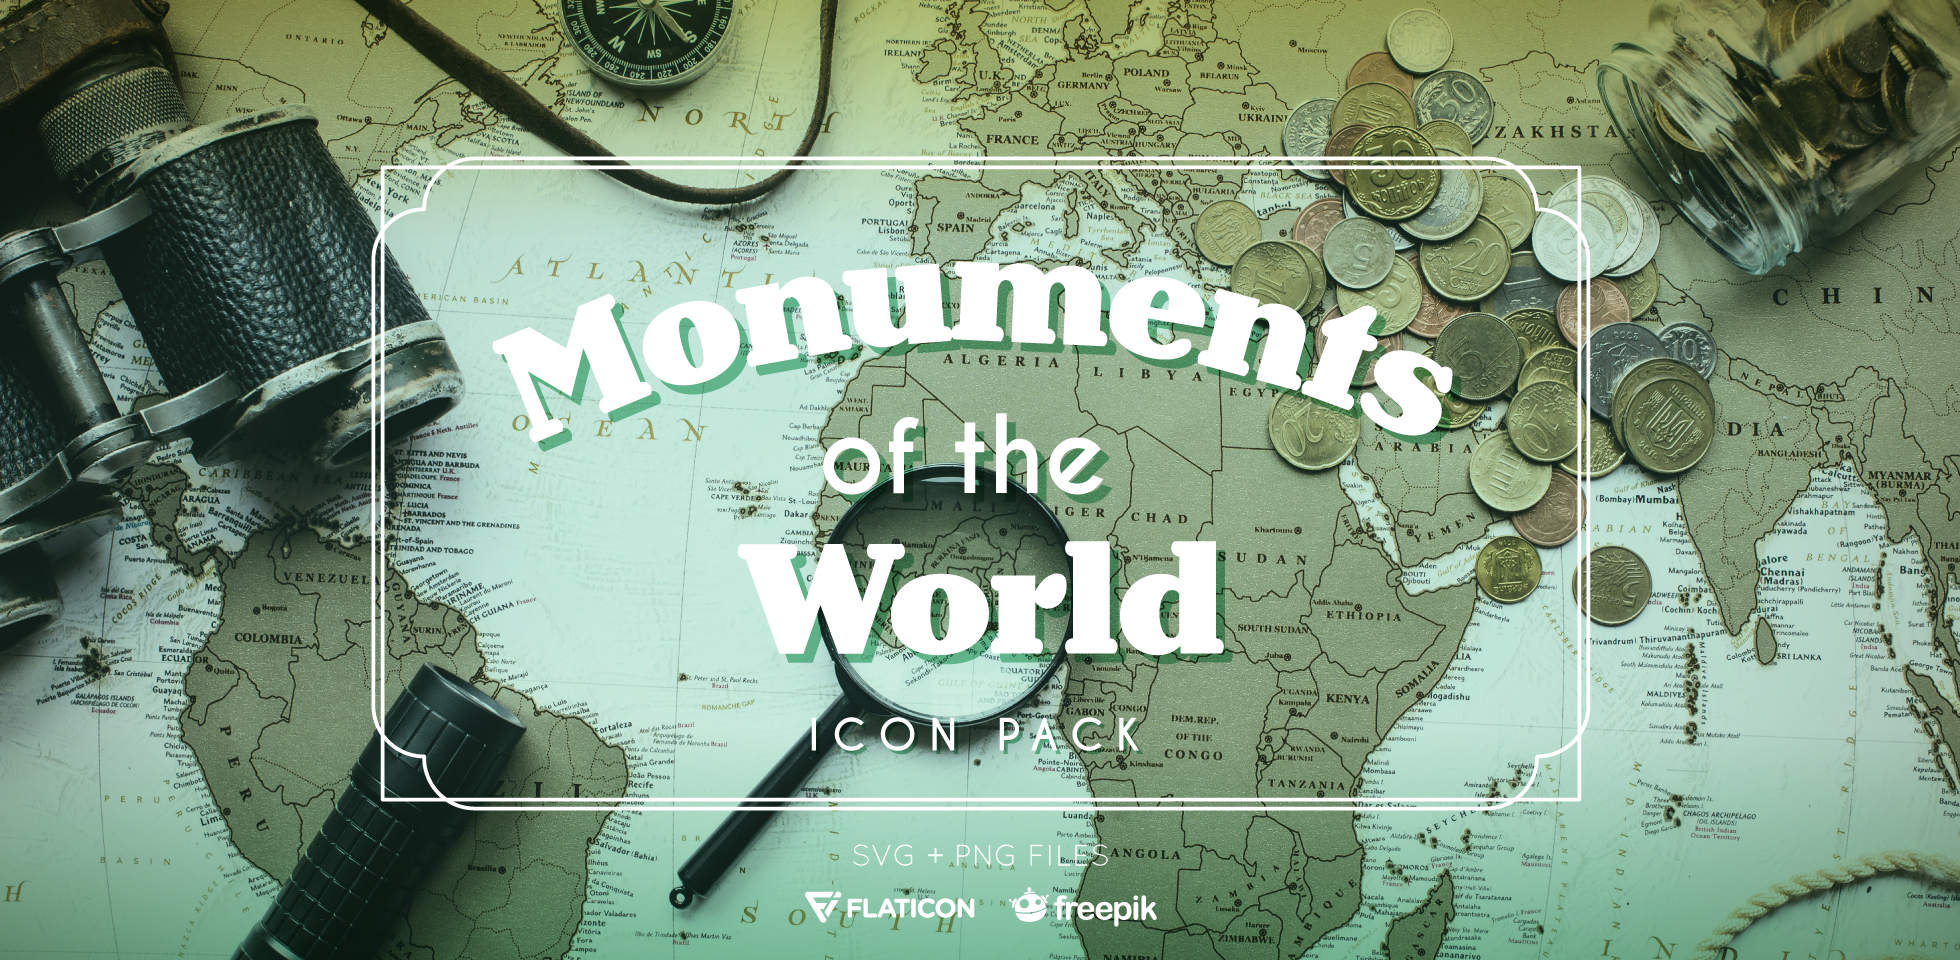 Free Download: Monuments of the World Icon Pack